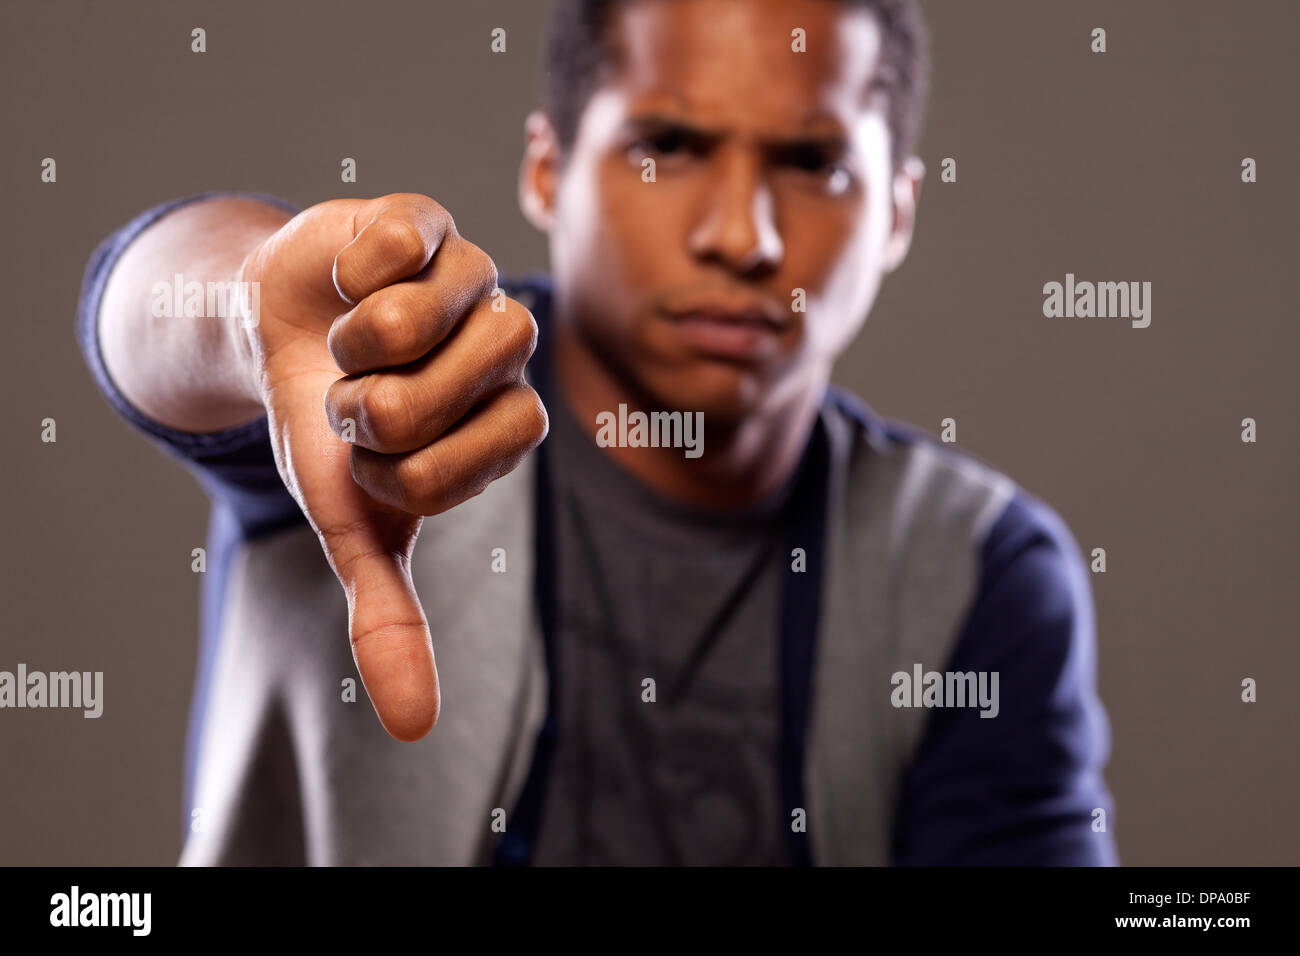 scowling dark young man showing thumb down - Stock Image